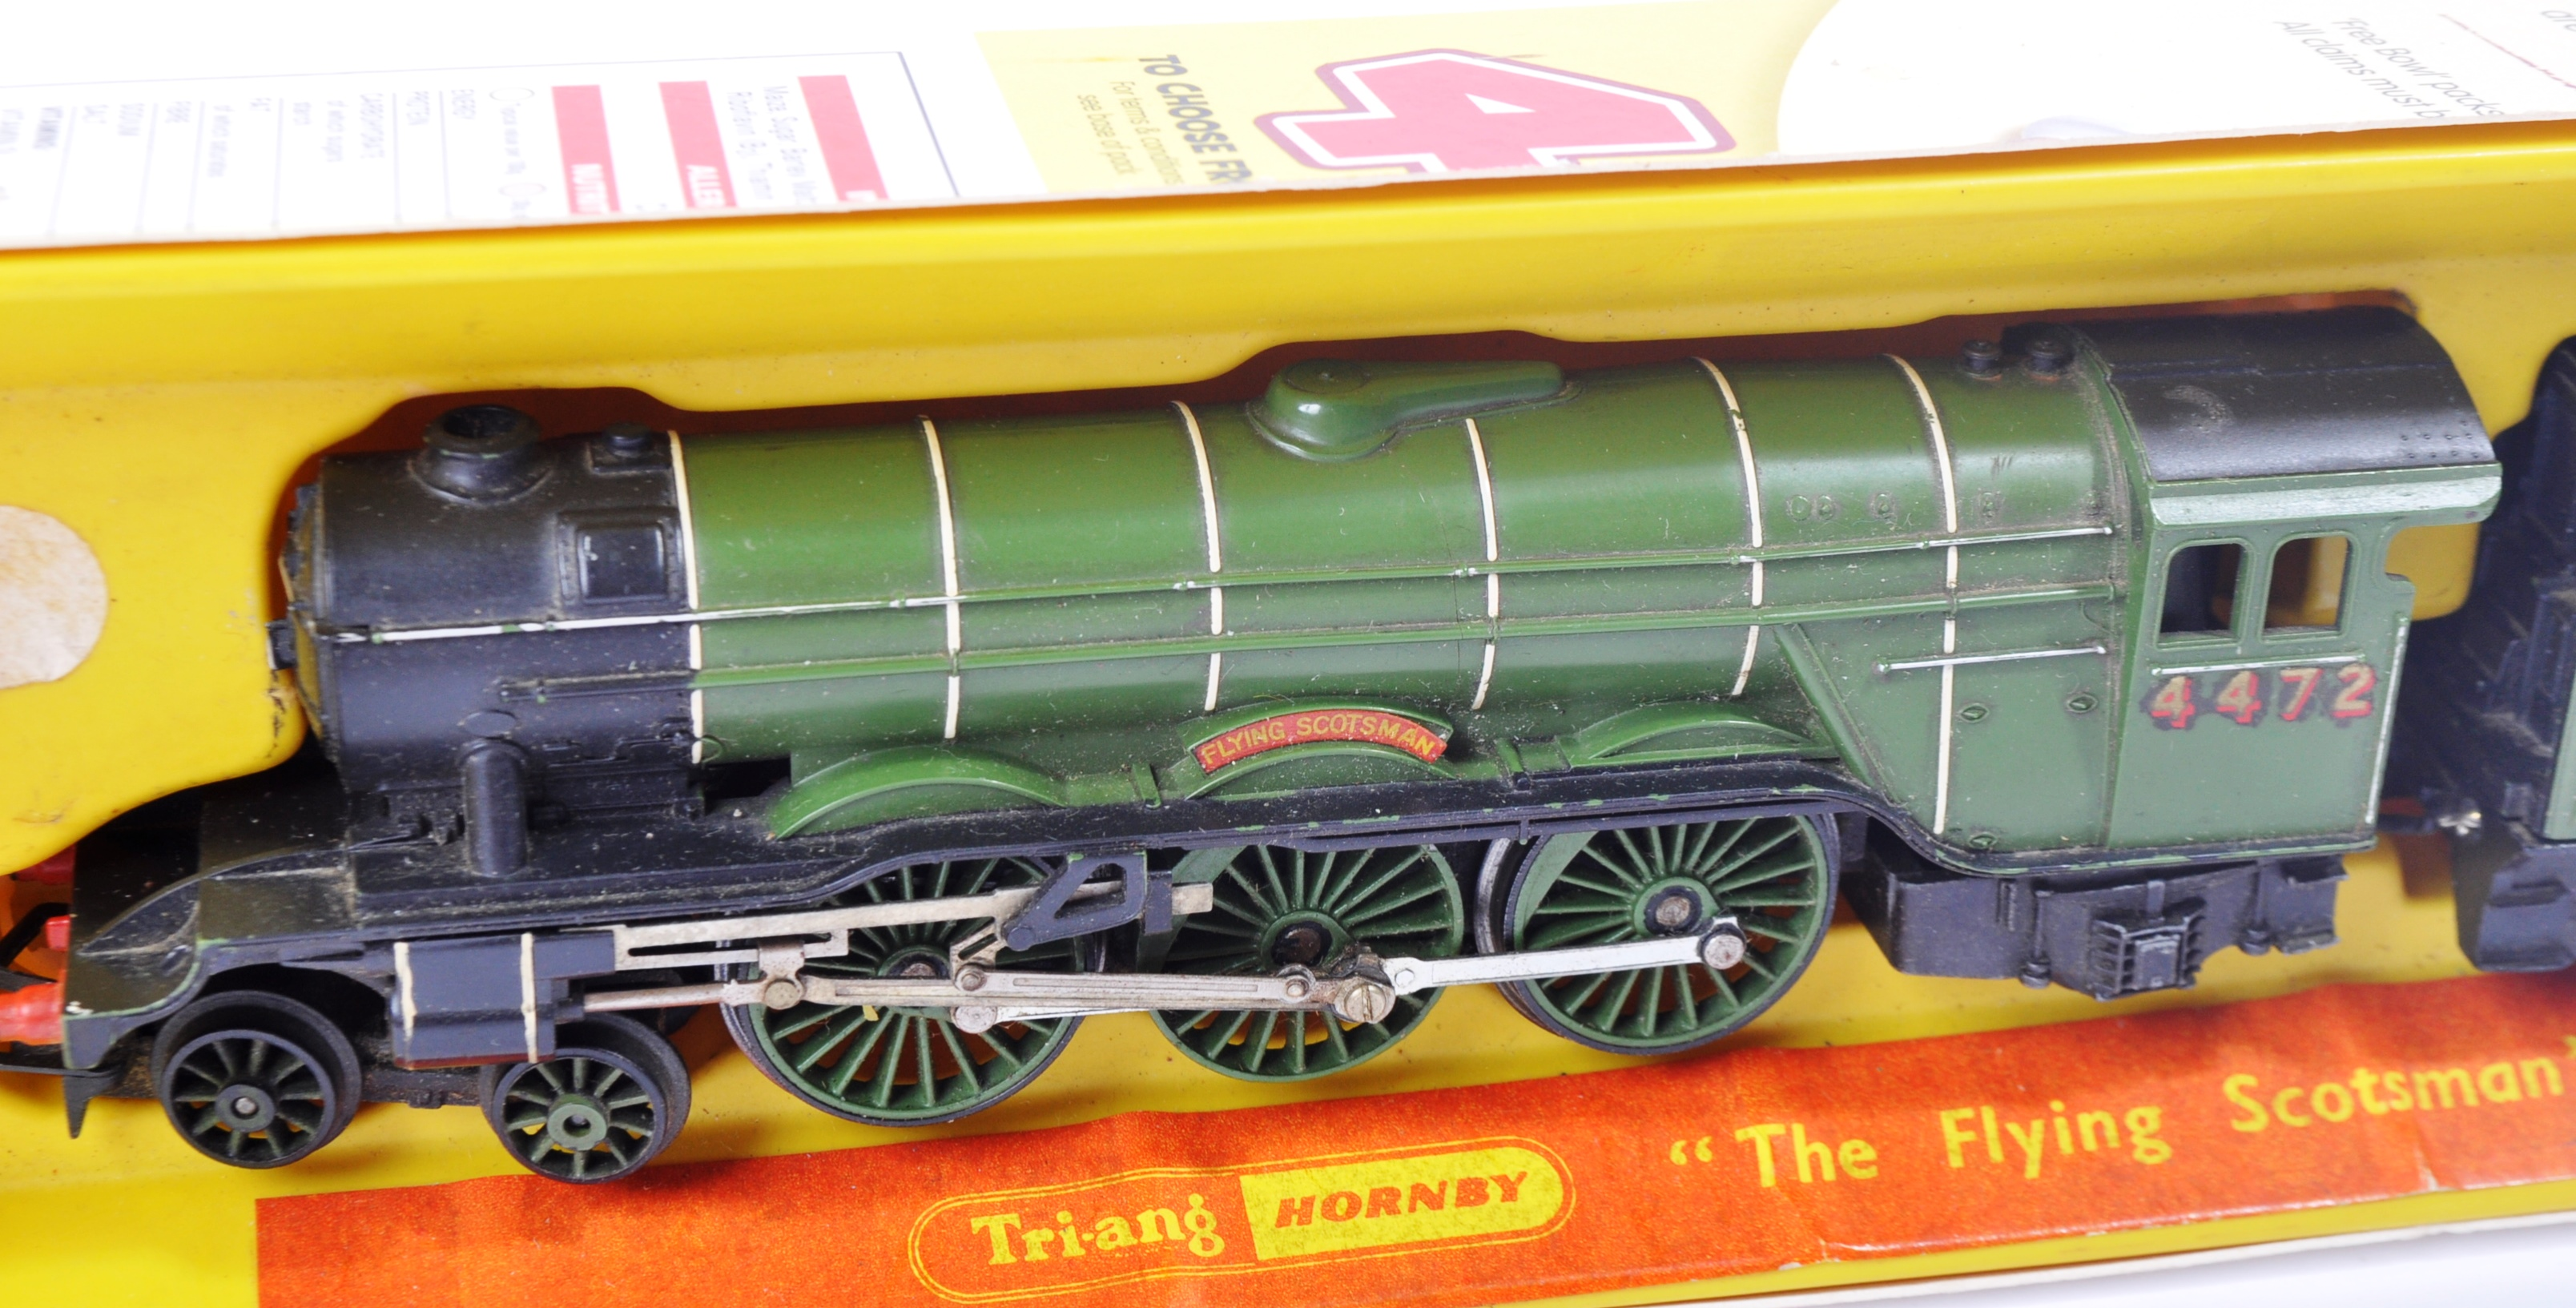 TWO VINTAGE HORNBY & TRIANG MODEL RAILWAY TRAINSET LOCOMOTIVES - Image 2 of 6